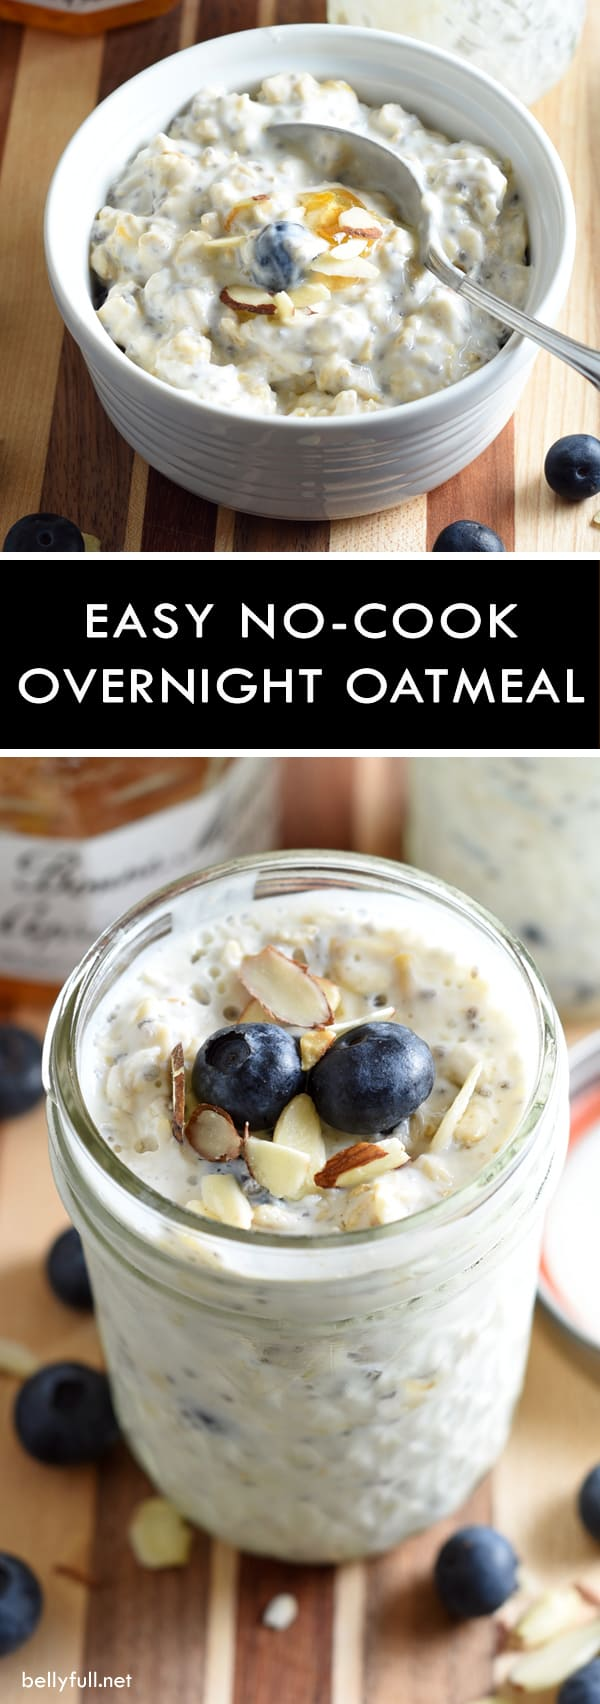 No-Cook Overnight Oatmeal - this overnight oatmeal comes together in just 5 minutes and is easily customizable using your favorite fruit and jam. Requires no cooking, and since it's prepared in a single serving jar with lid, it's perfect for on the go, too!